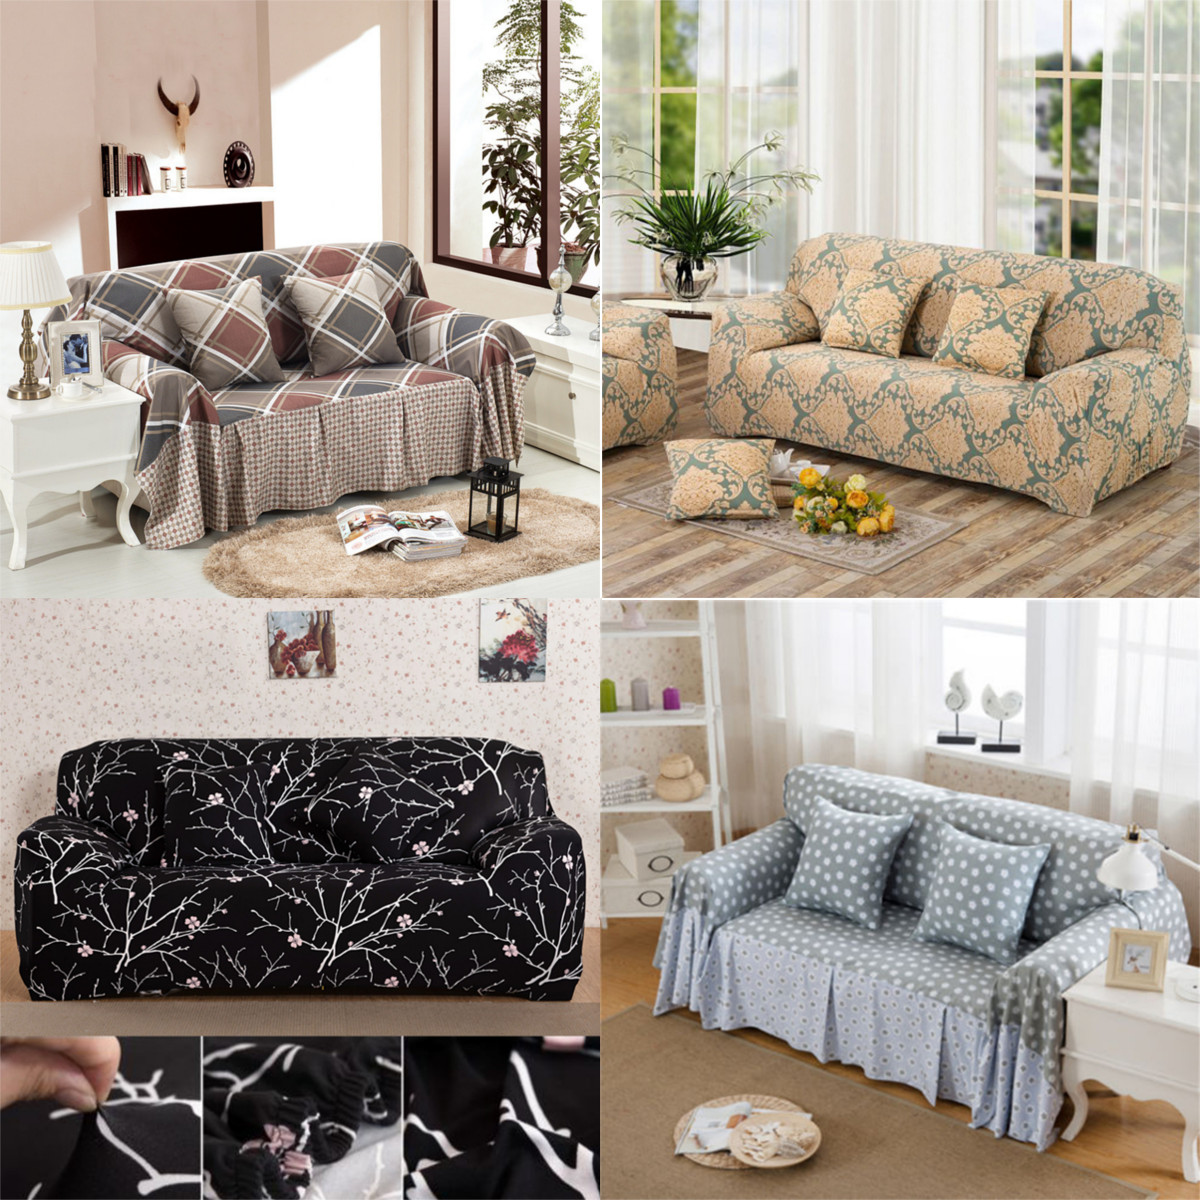 Details about 1~4x Seater Stretch Check Linen Blend Slipcover Sofa  Furniture Protect Cover US